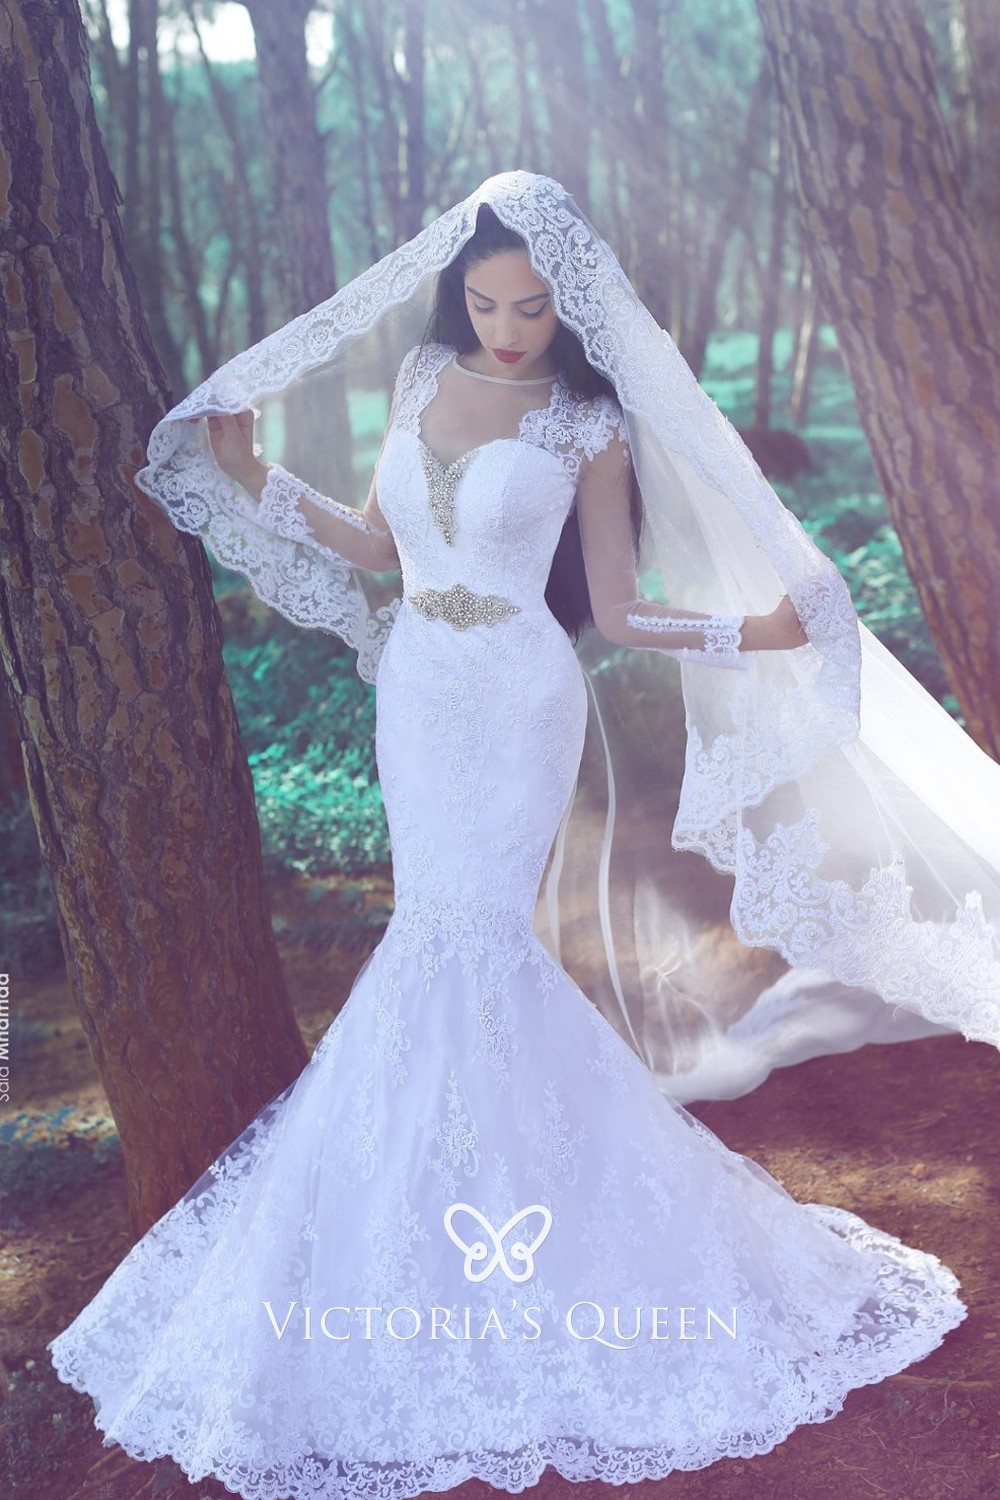 Beaded Sweetheart Long Sleeve Lace Mermaid Wedding Gown Vq,Wedding Dress Chicago Affordable